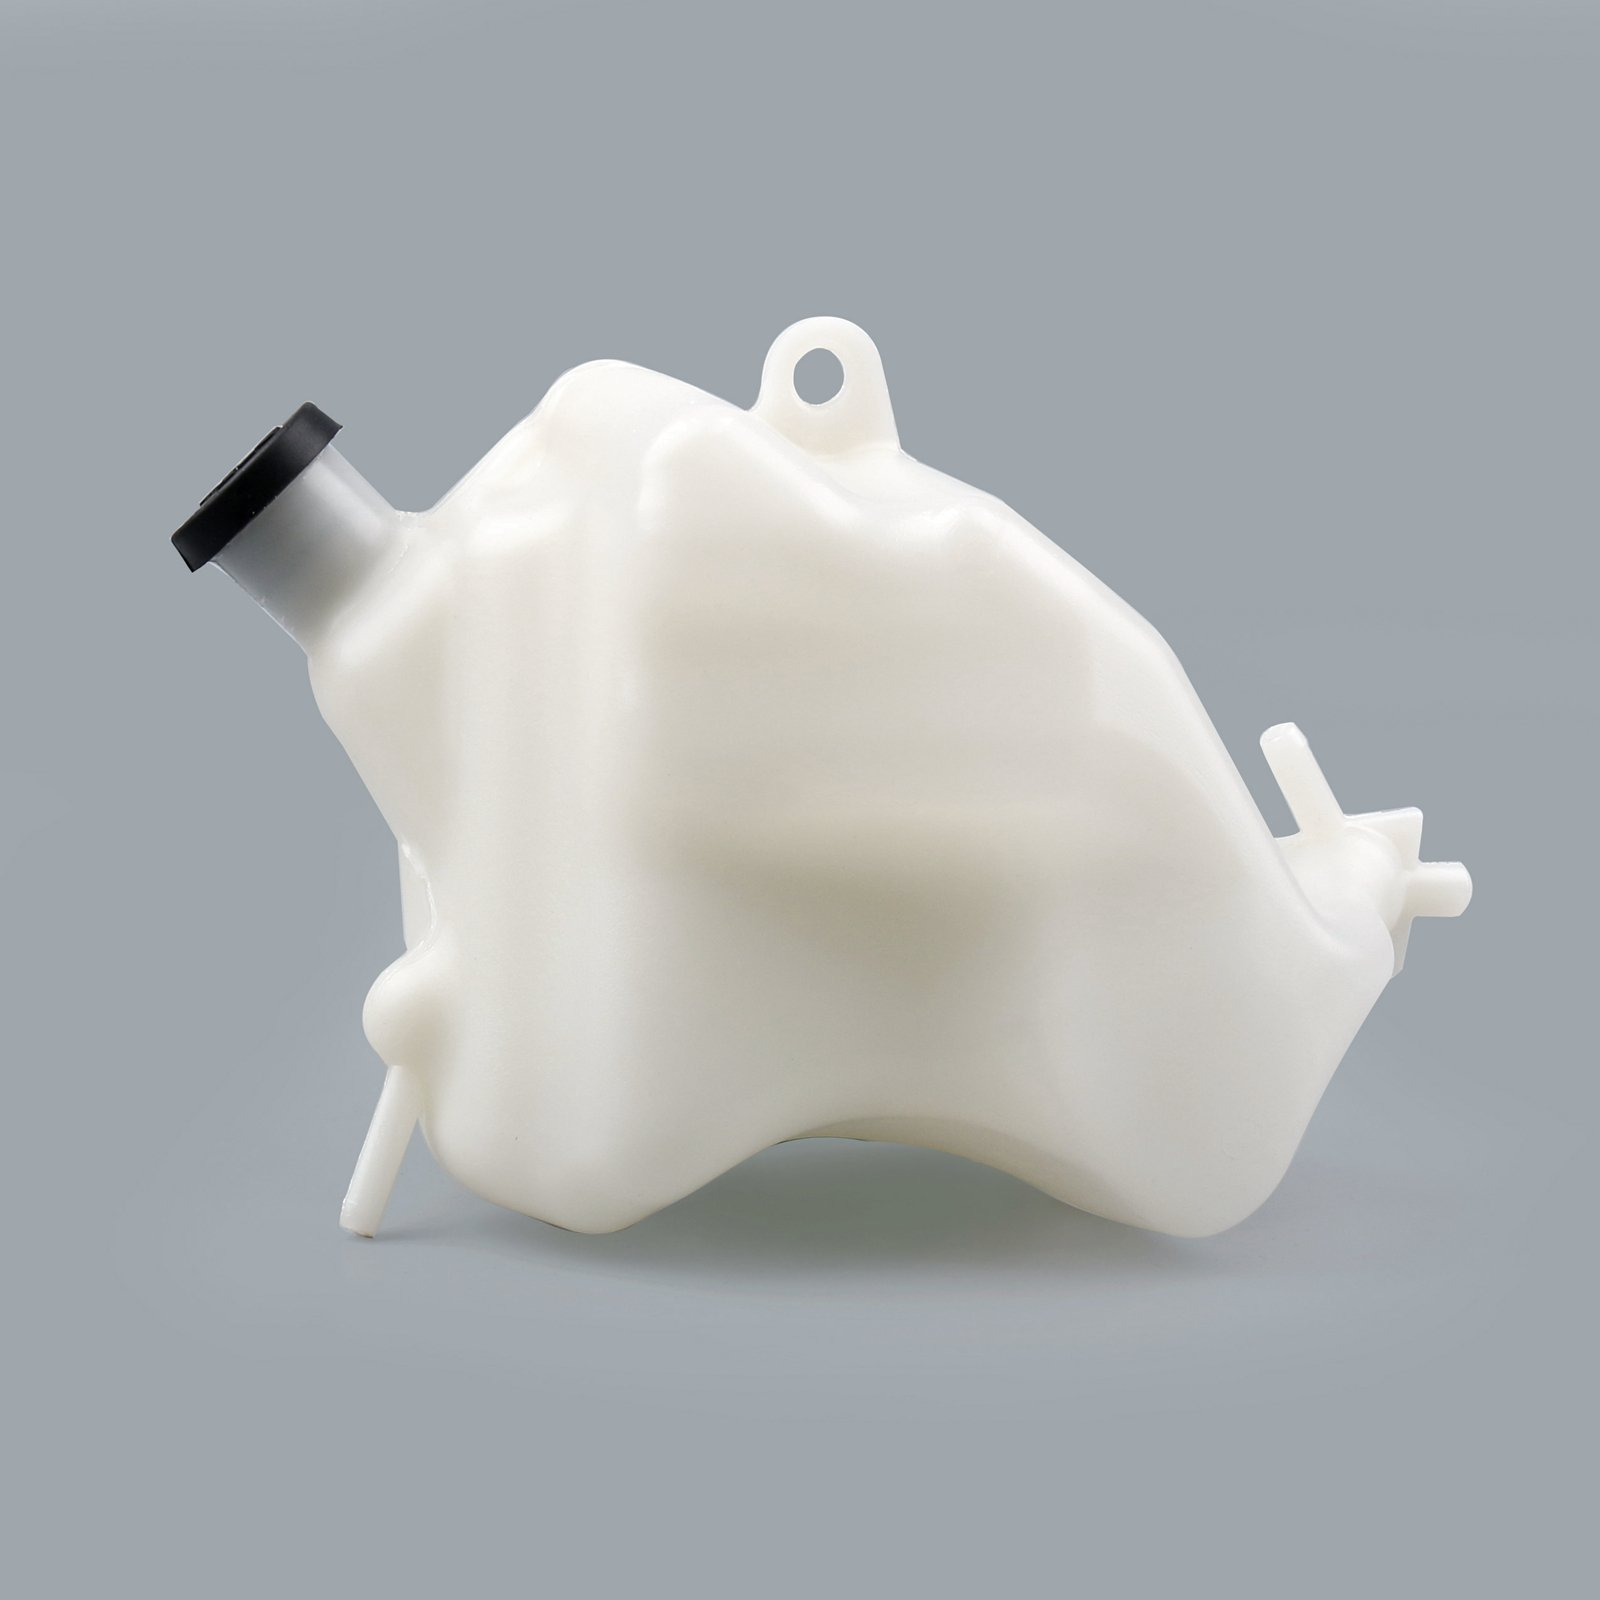 Areyourshop Coolant Water Overflow Tank Radiator Bottle Reservior For Honda CBR600RR 07-08 by Areyourshop